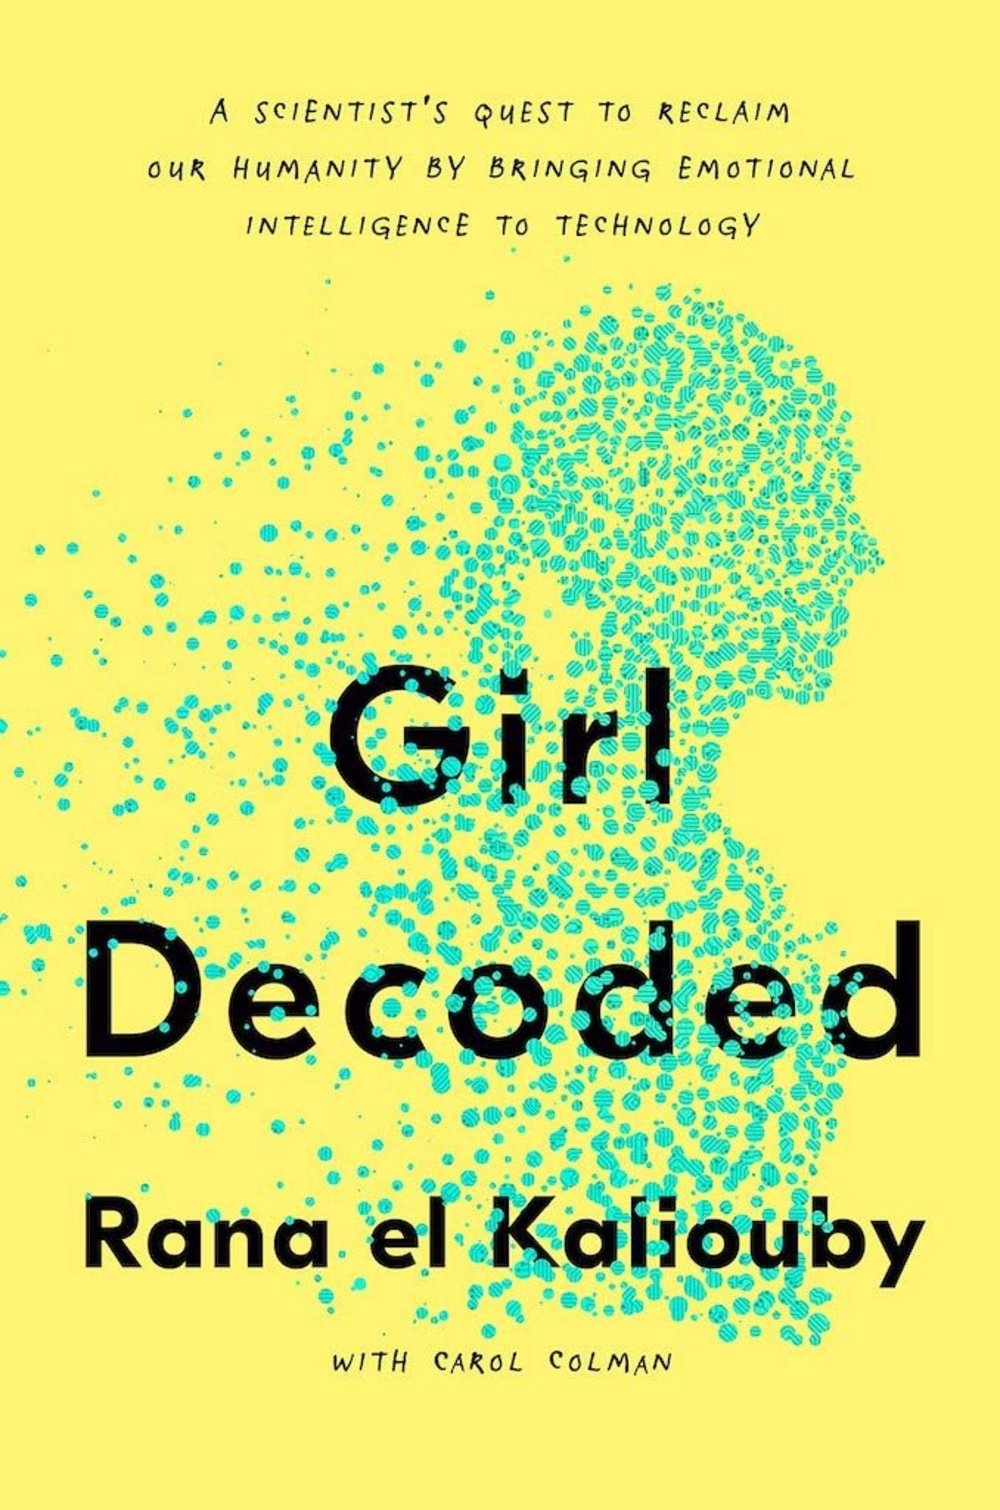 Body image for Rana el Kaliouby: why technology needs emotional intelligence